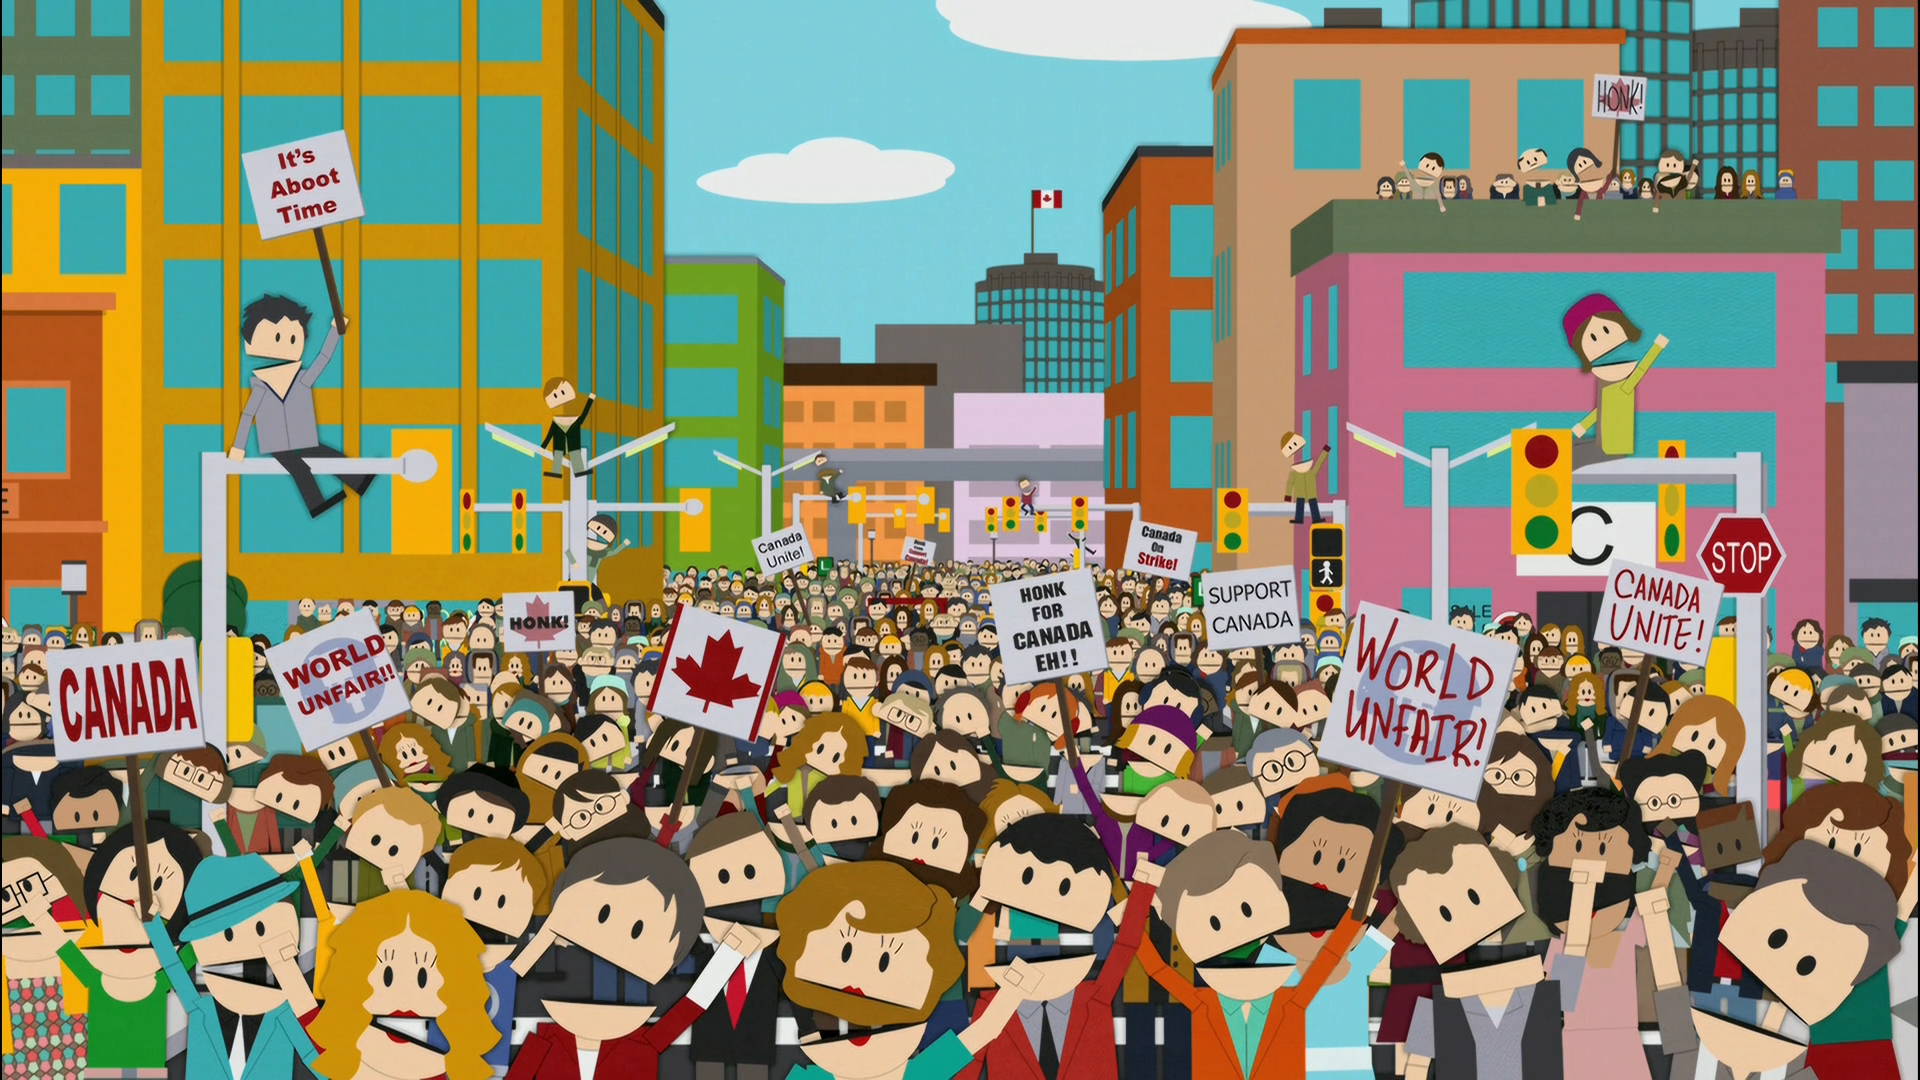 canada on strike song south park archives fandom powered by wikia